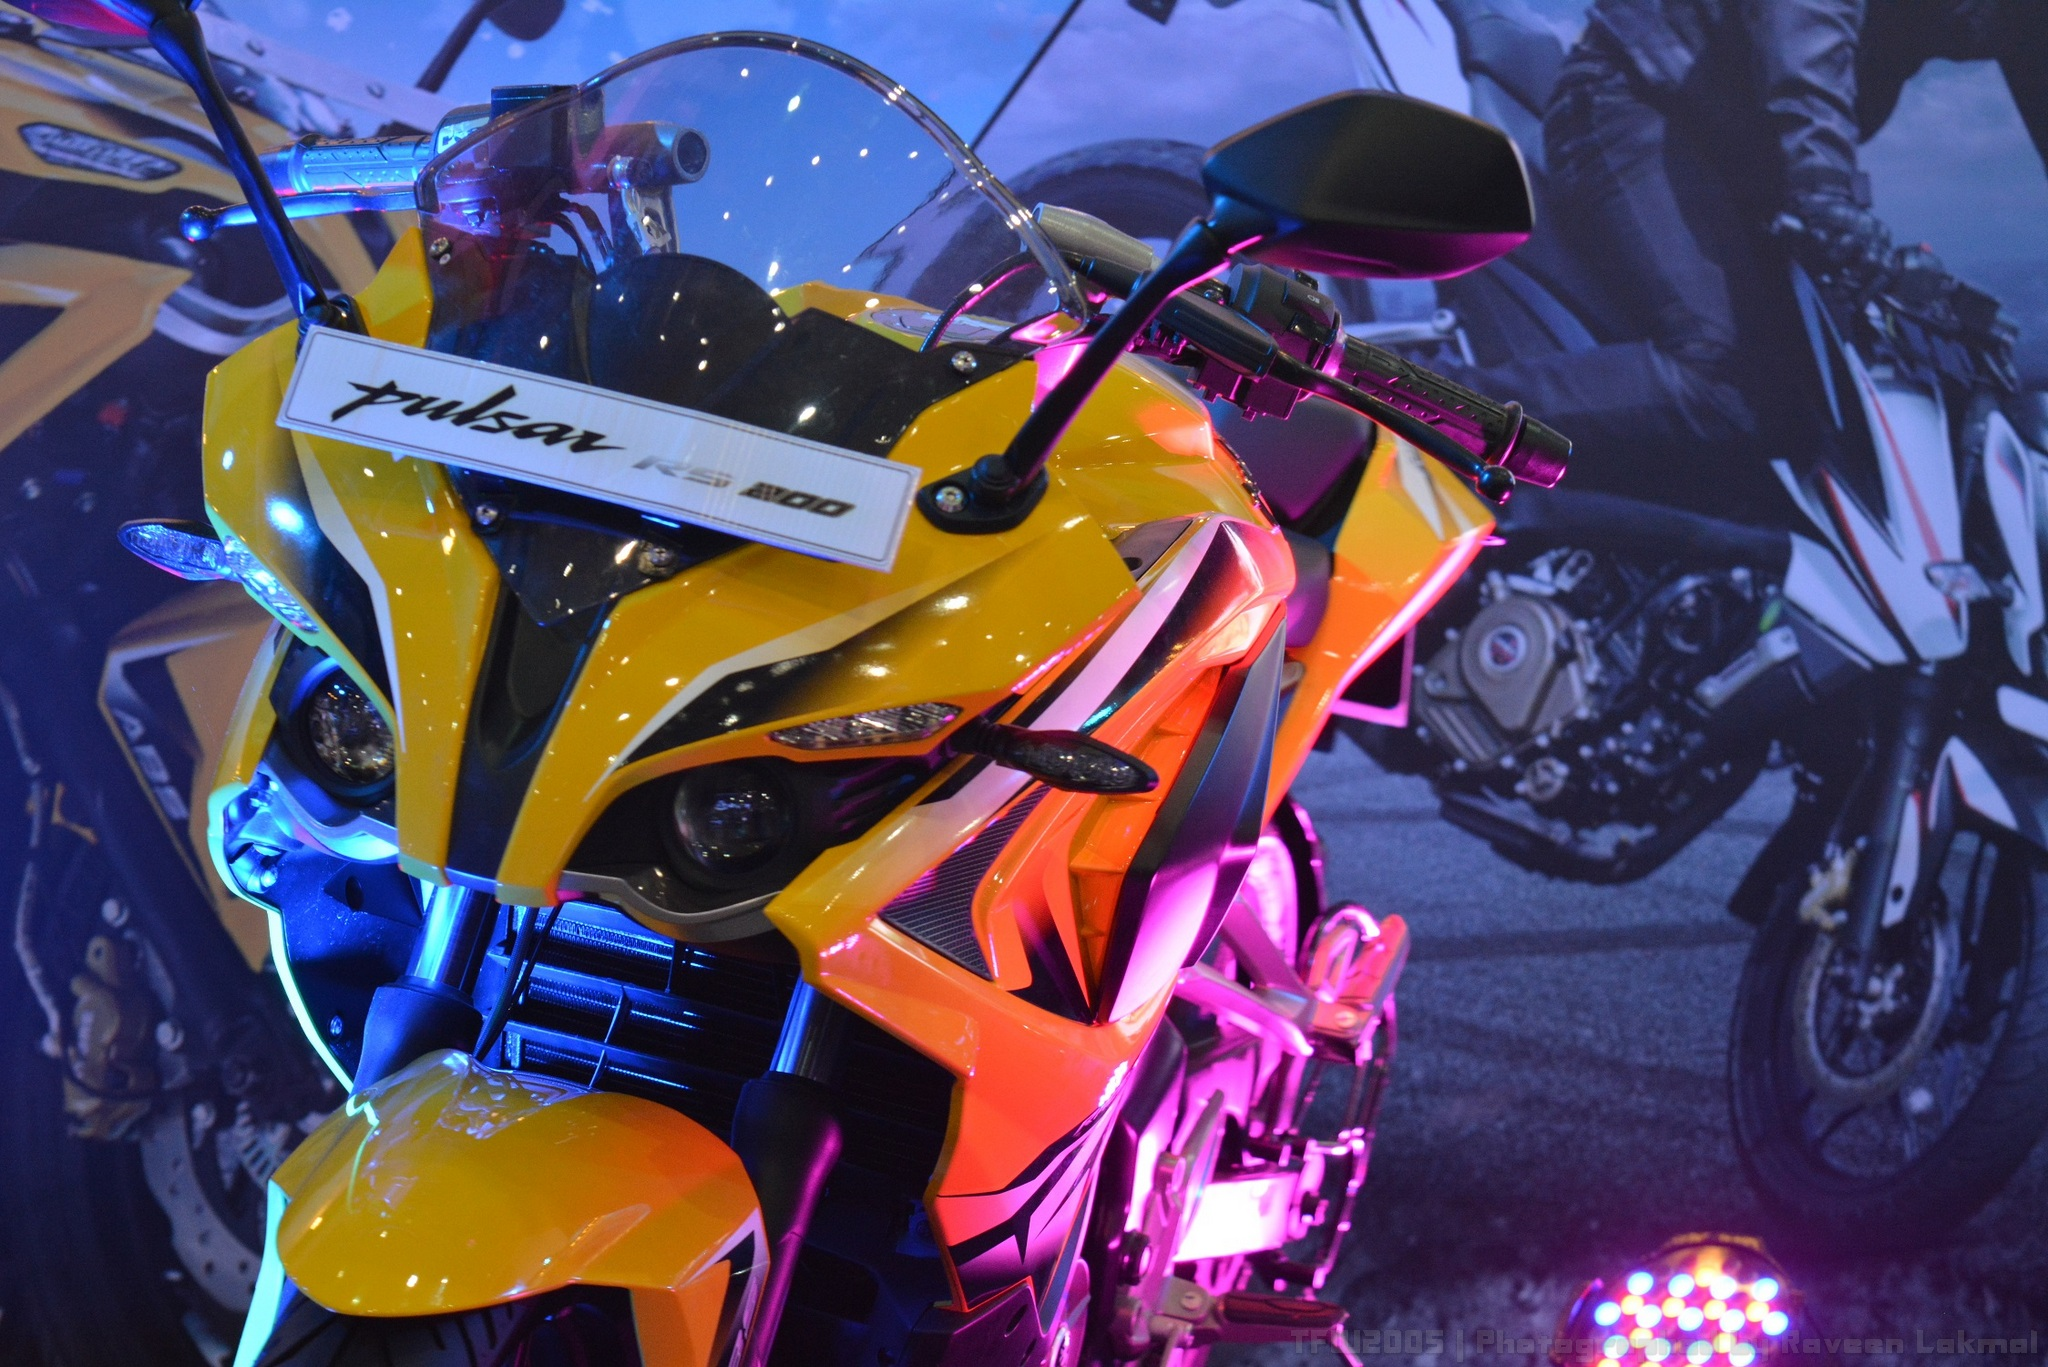 Bajaj Pulsar Rs200 Bumblebee And Stinger Editions Featured